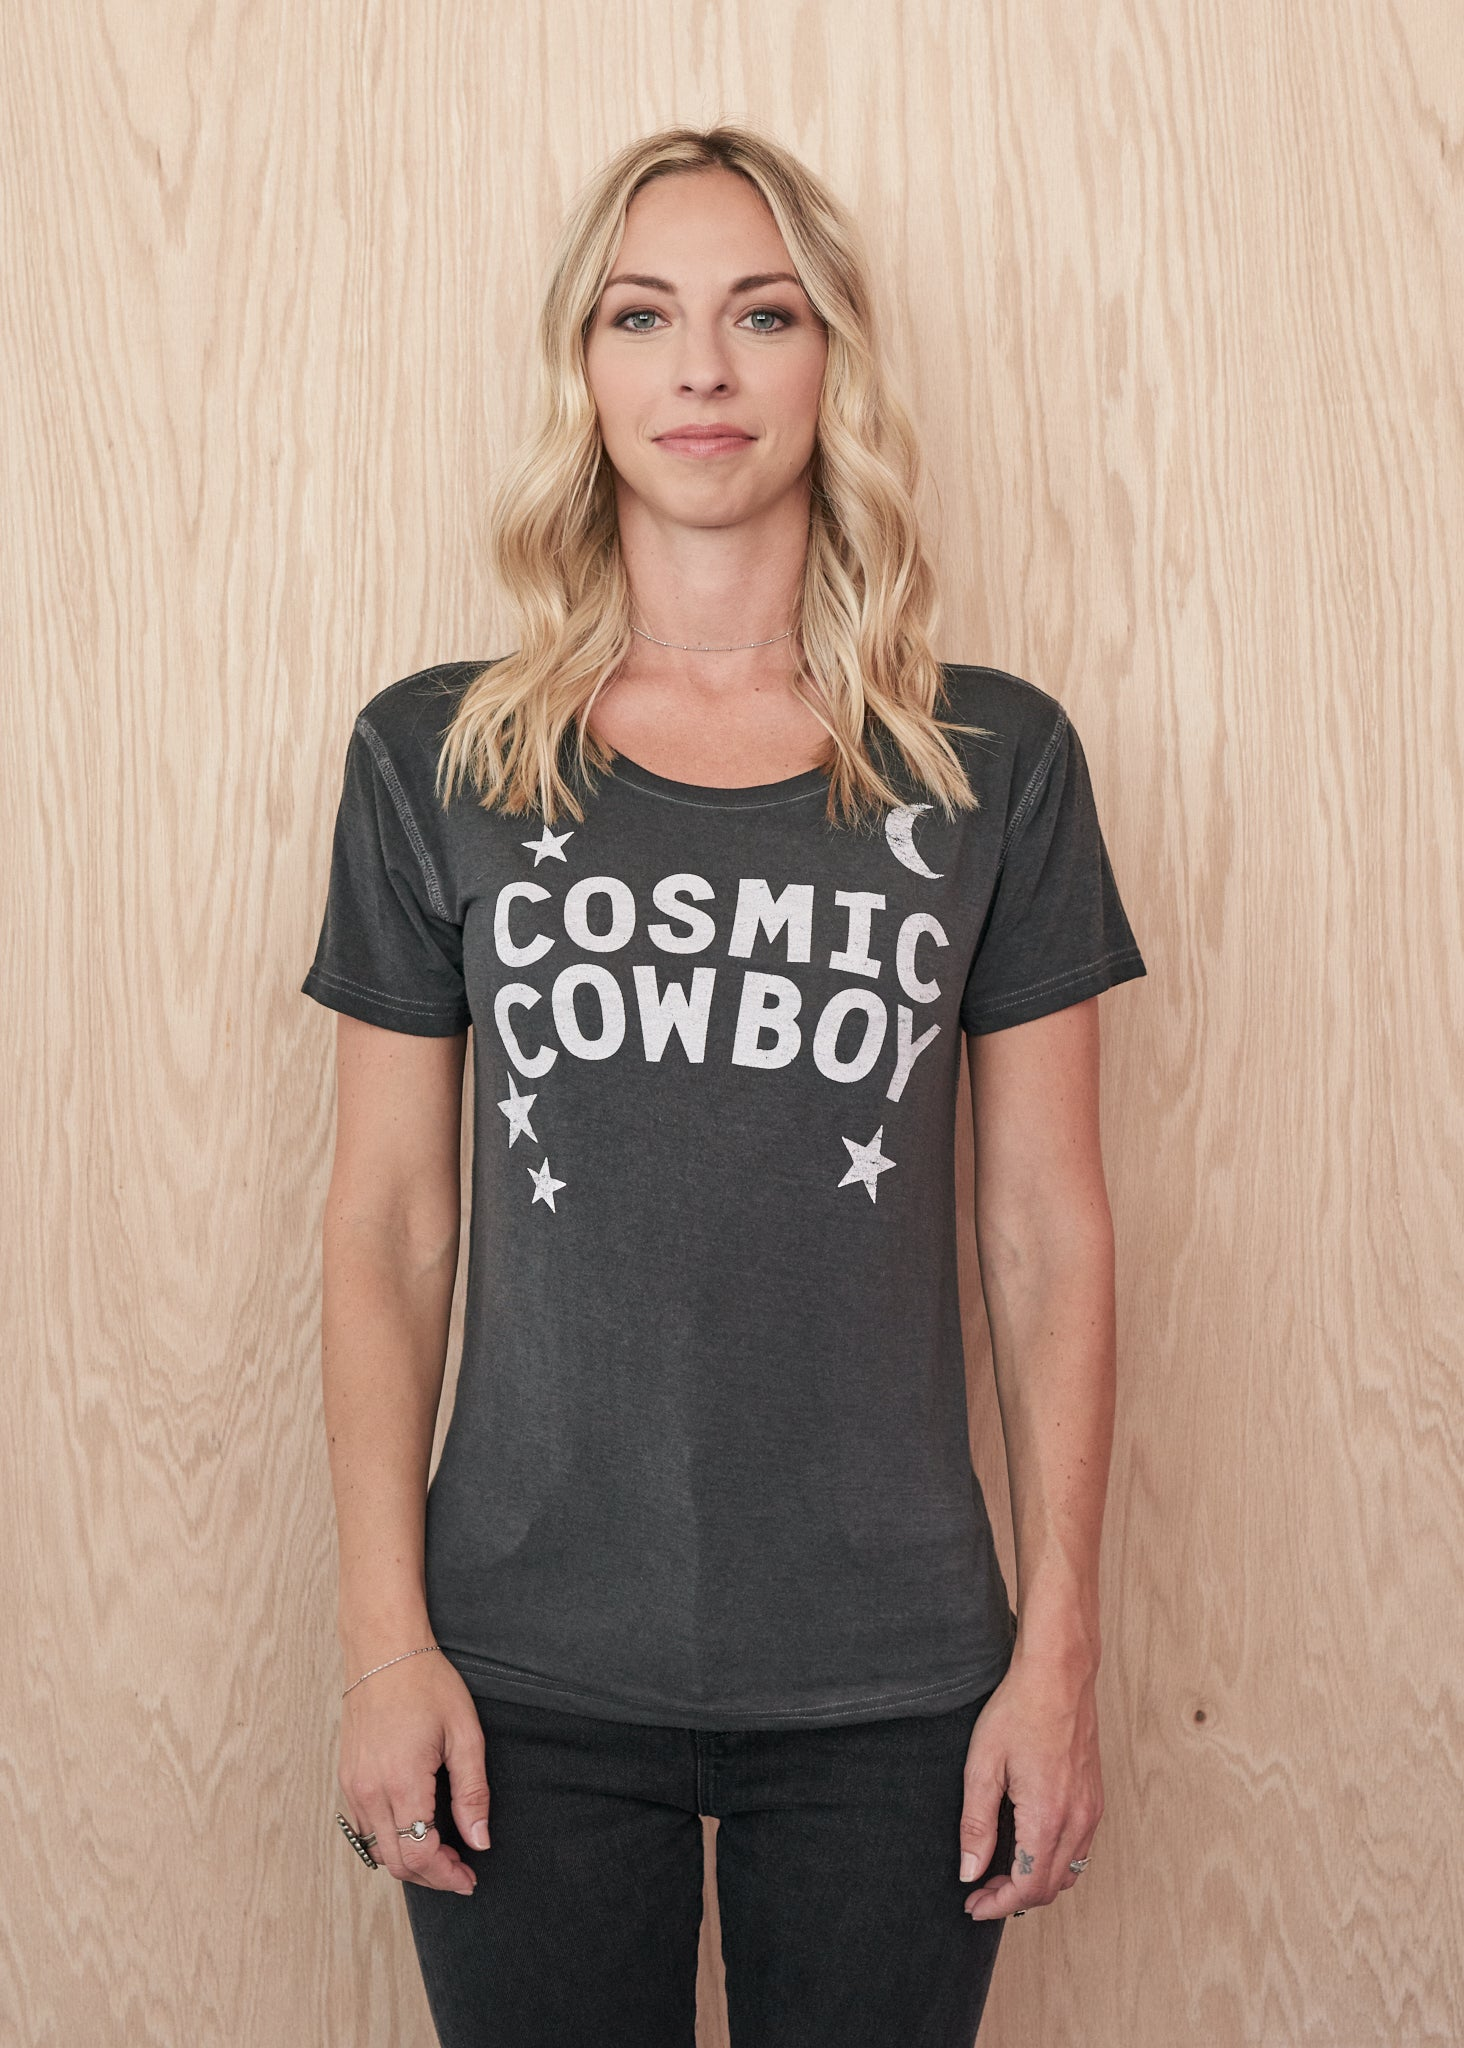 Cosmic Cowboy Droptail Tee - White Print - Women's Tee Shirt - Midnight Rider